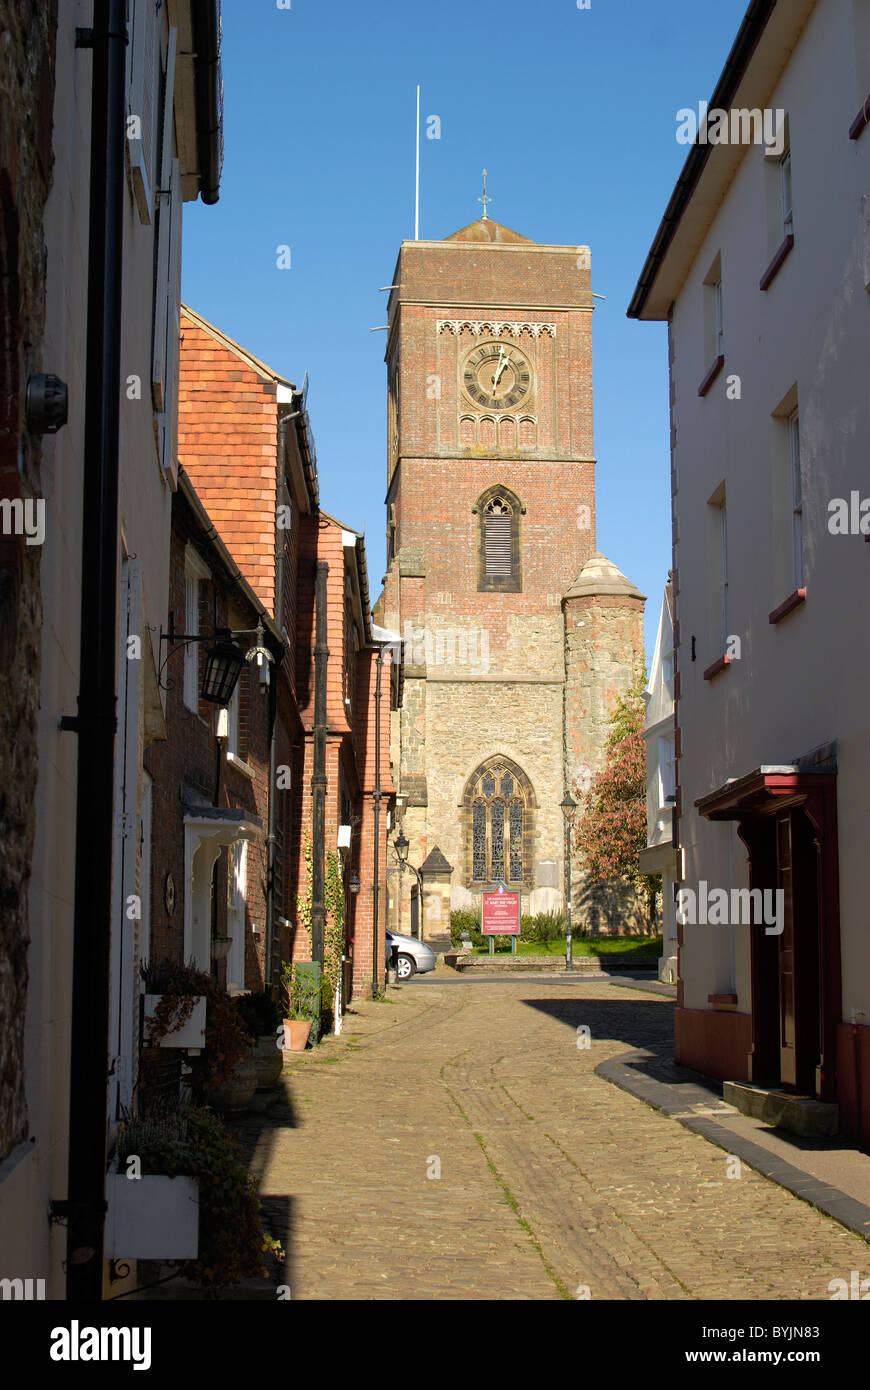 Saint Mary the Virgin Church at Petworth. West Sussex. England - Stock Image